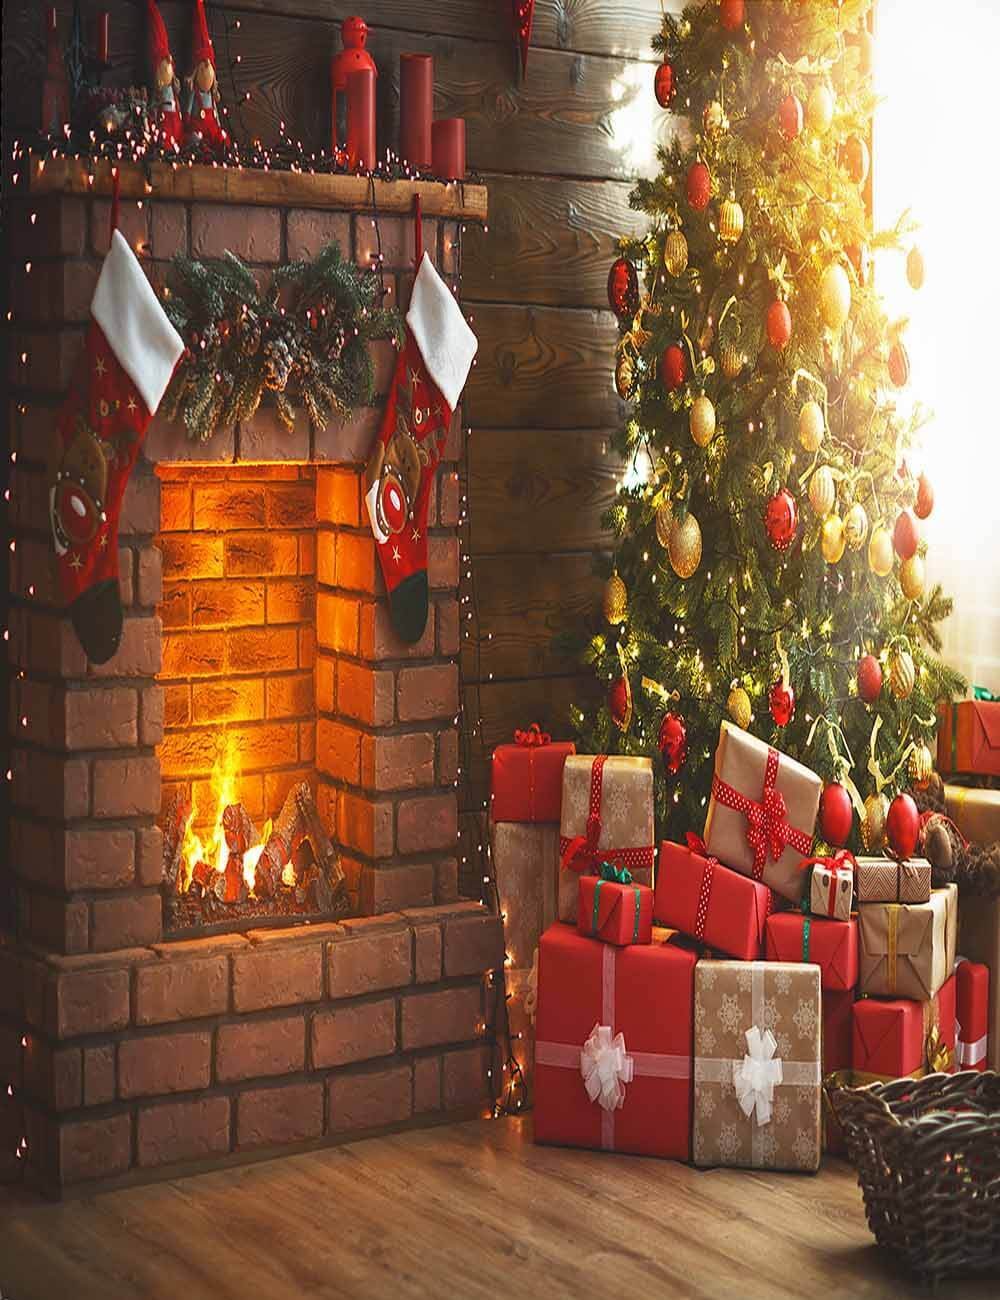 Interior Classic Christmas Tree Fireplace Photography Backdrop J